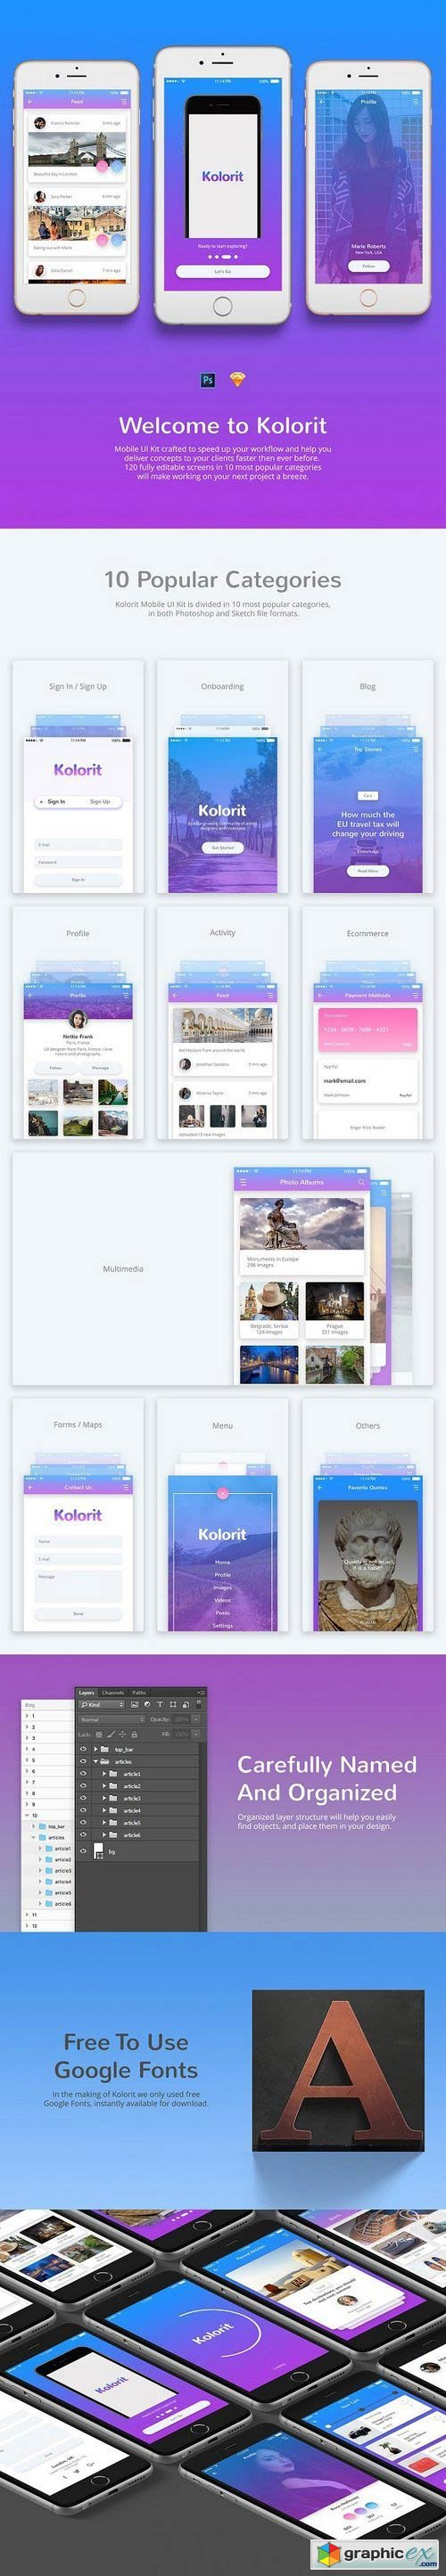 Kolorit Mobile UI Kit